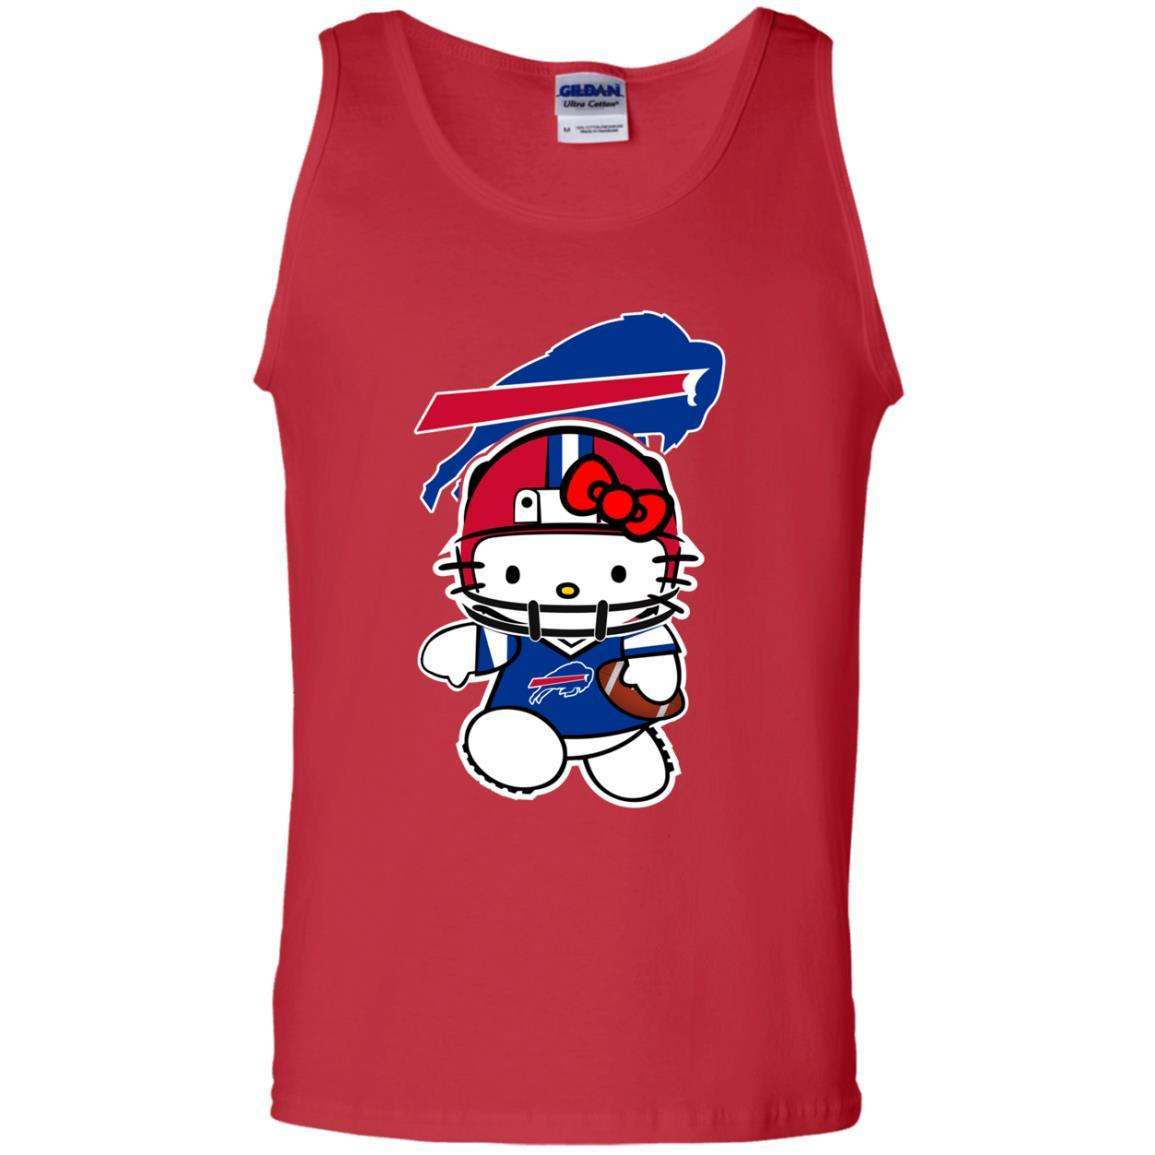 check out this awesome hello kitty love buffalo bills football gift tank top onepriceapparel. Black Bedroom Furniture Sets. Home Design Ideas